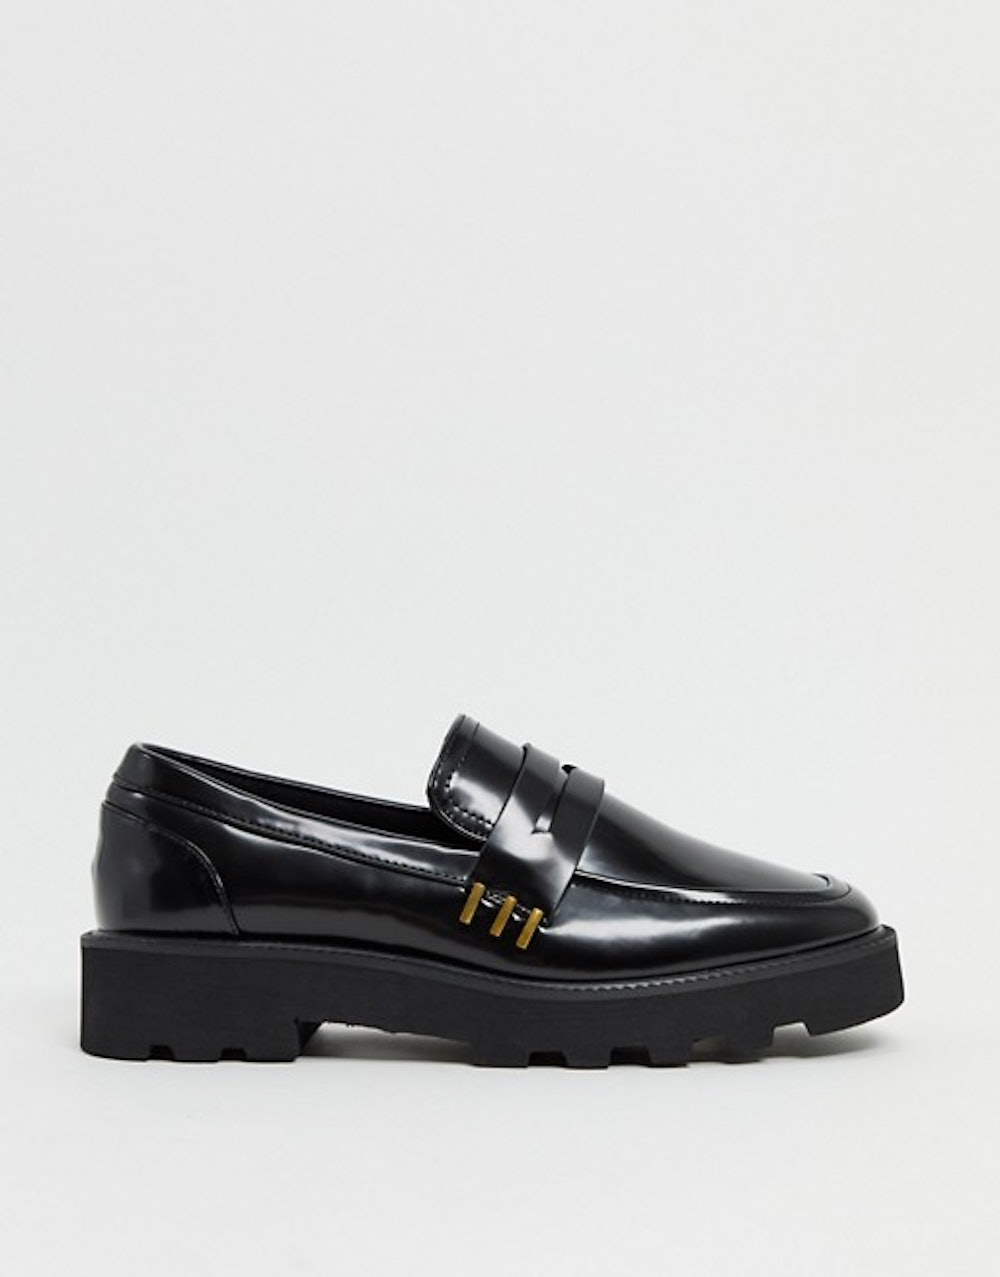 Mistie Chunky Square Toe Loafers